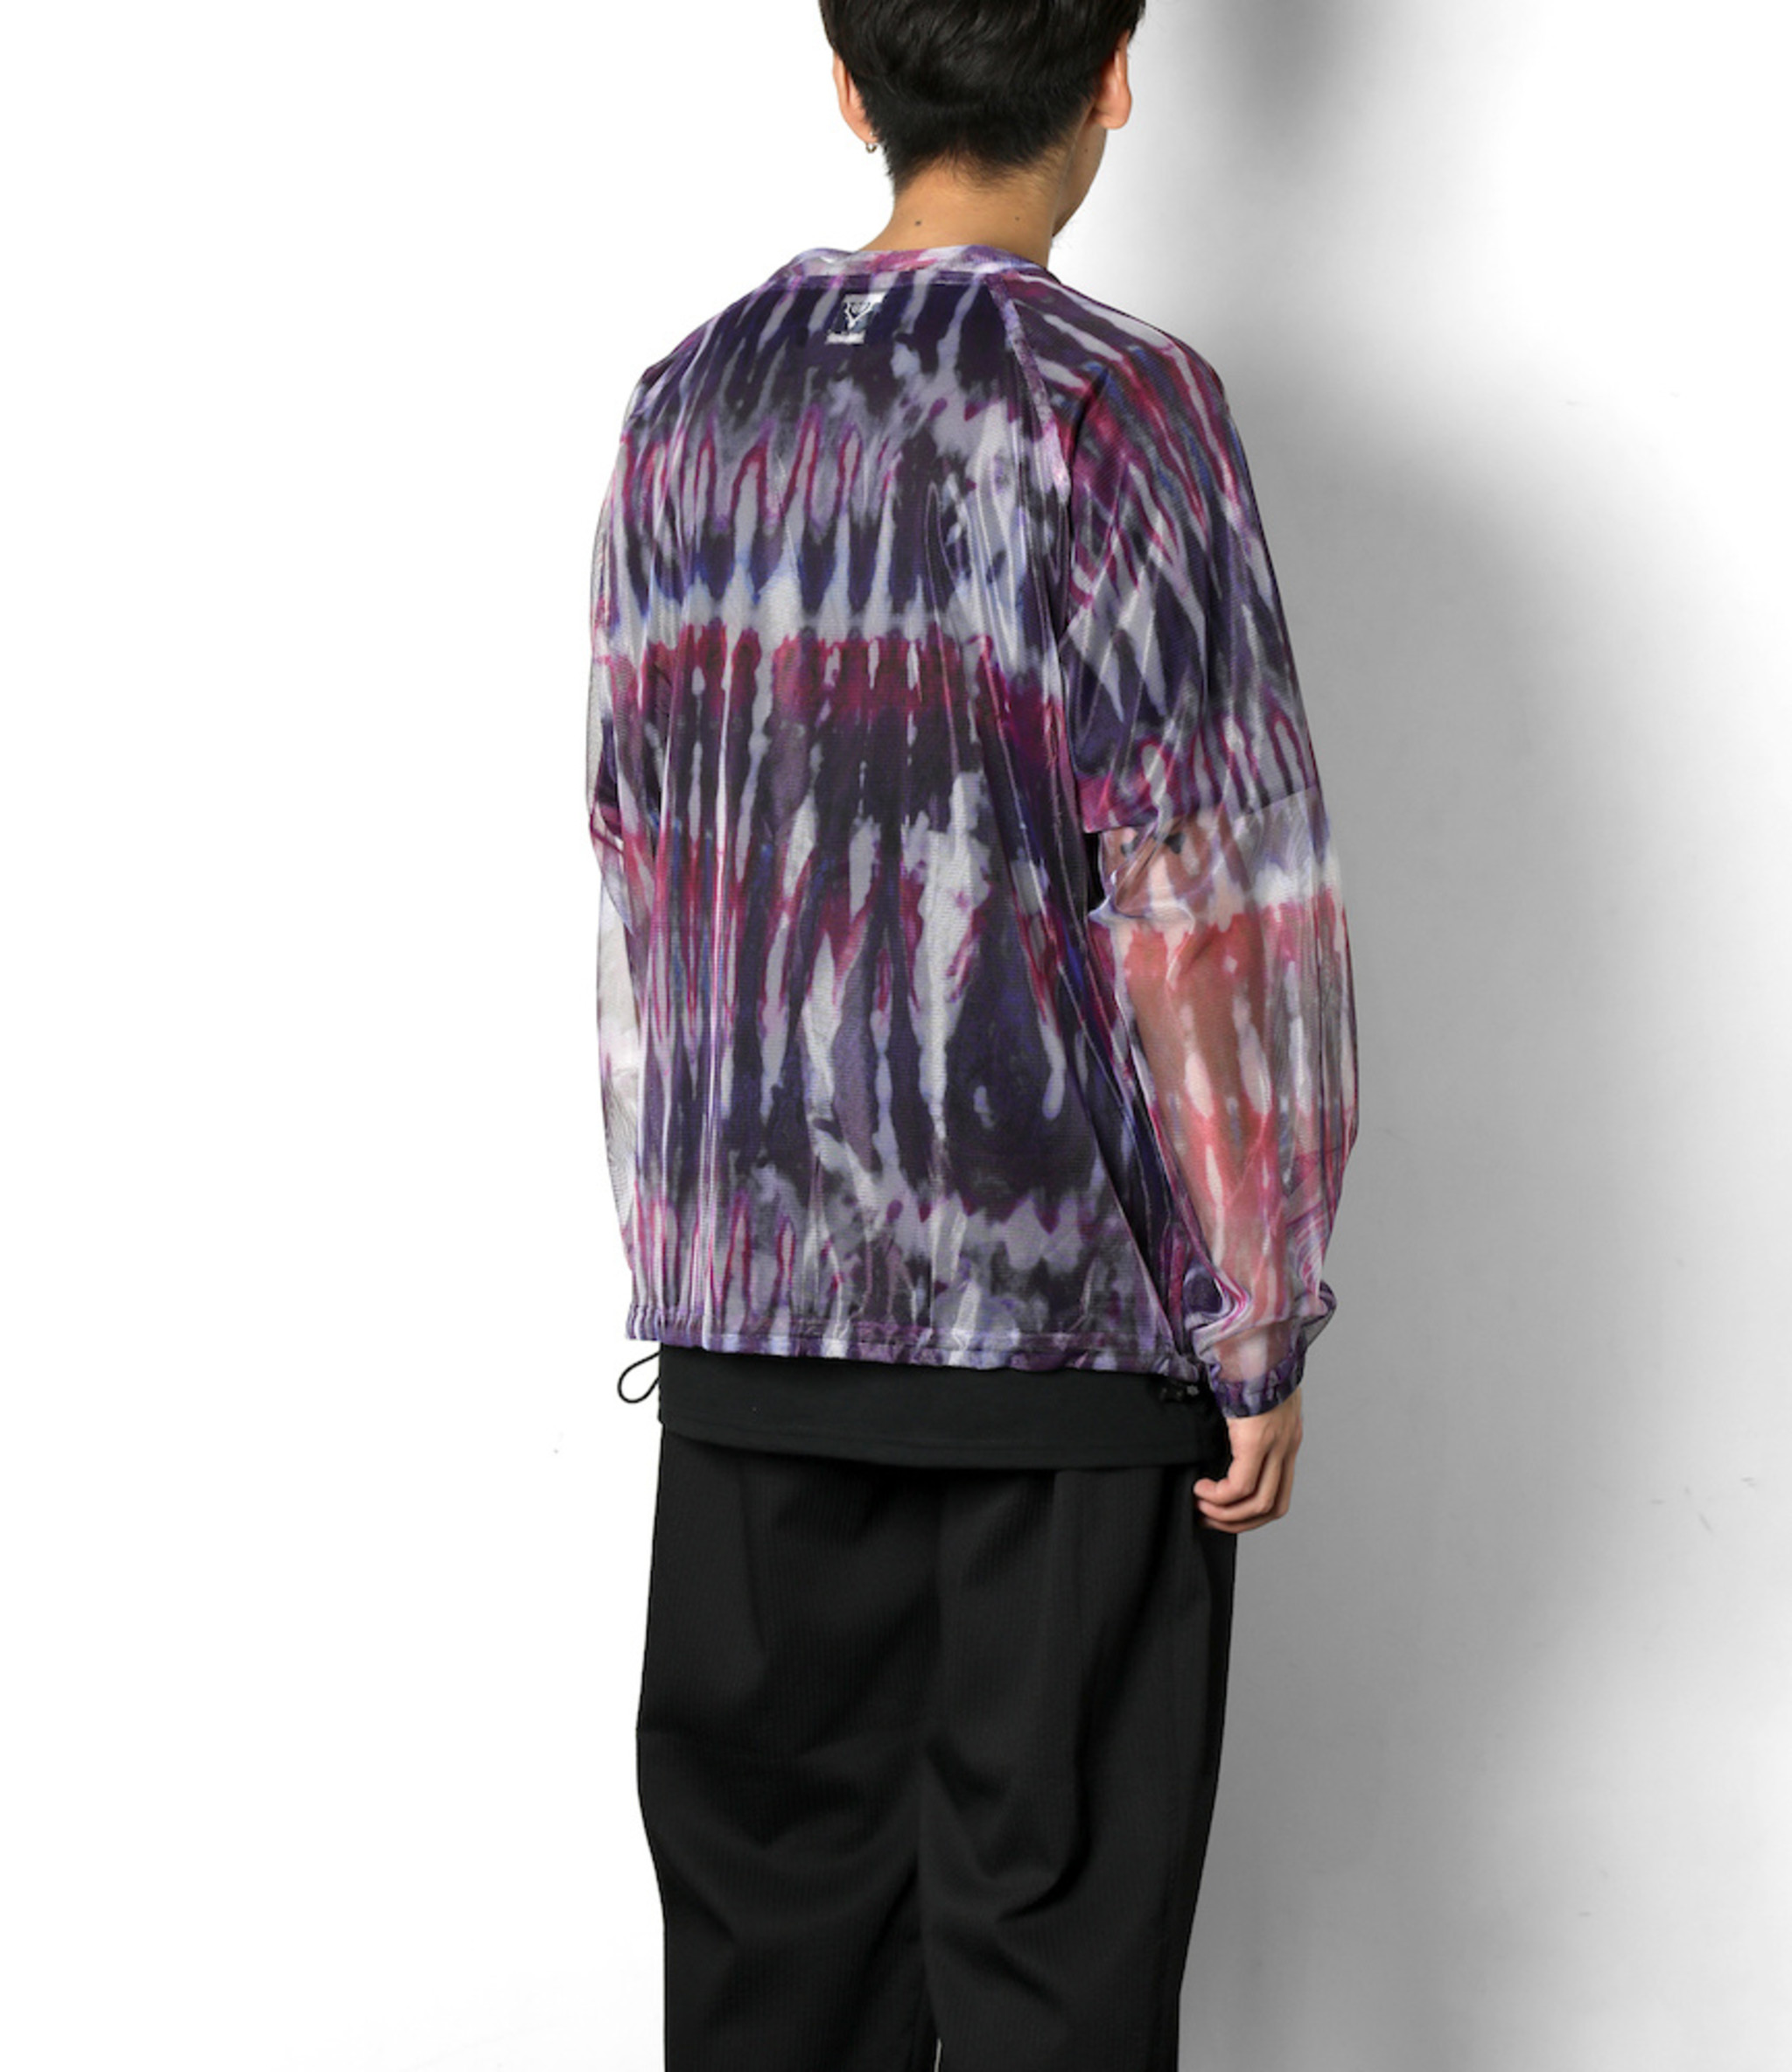 South2 West8 Bush Shirt - Poly Lightweight Mesh / Print - Tie Dye